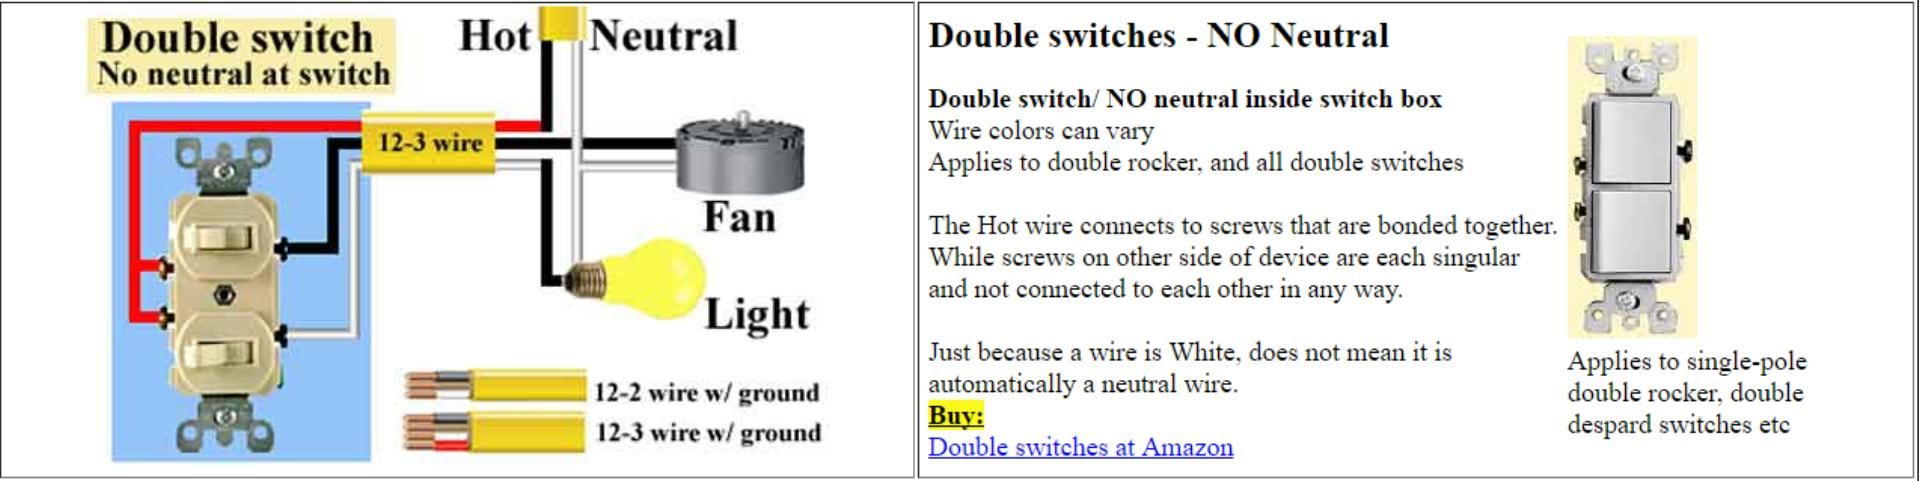 Magnificent A Neutral Wire Is What Color Photo - Electrical Diagram ...